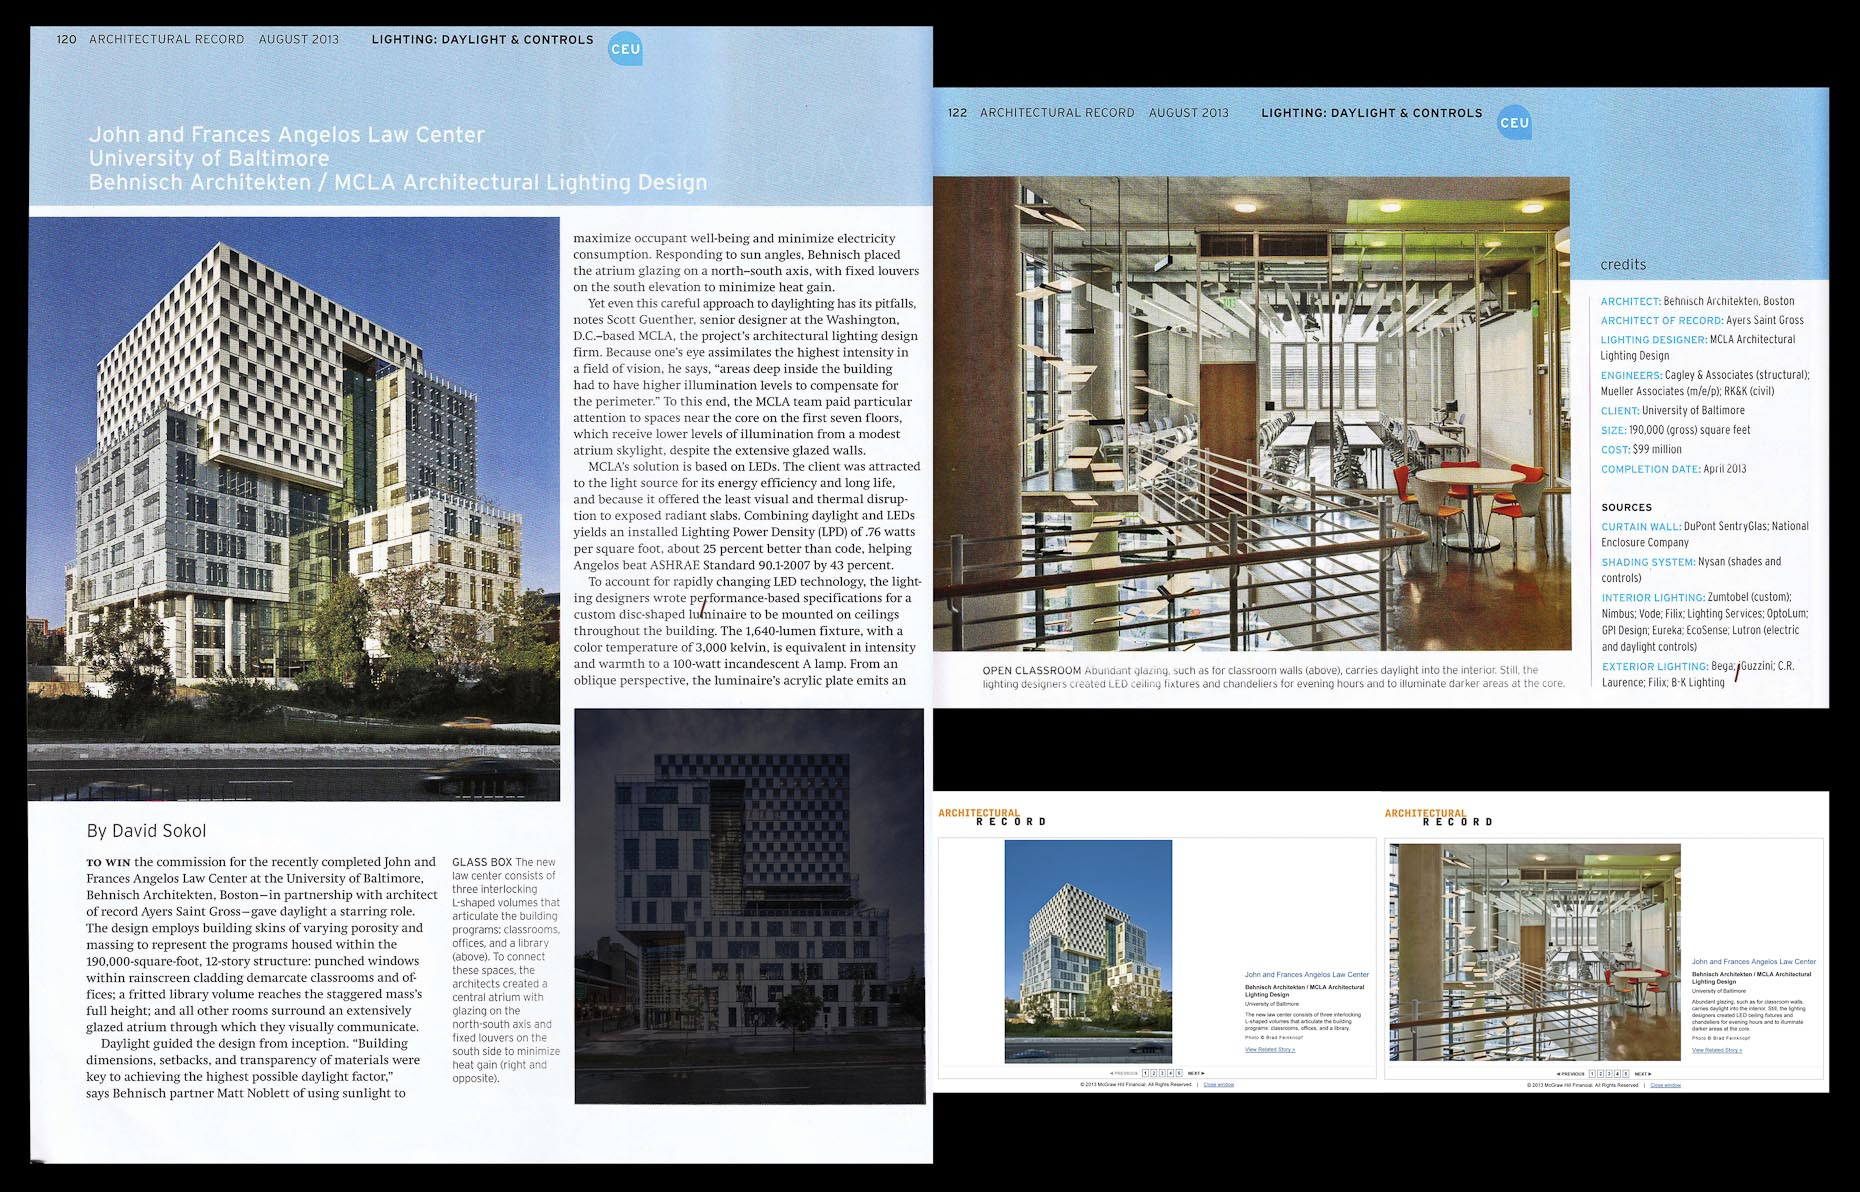 Architectural Record August 2013 Issue John & Frances Angelos Law Center at the University of Baltimore